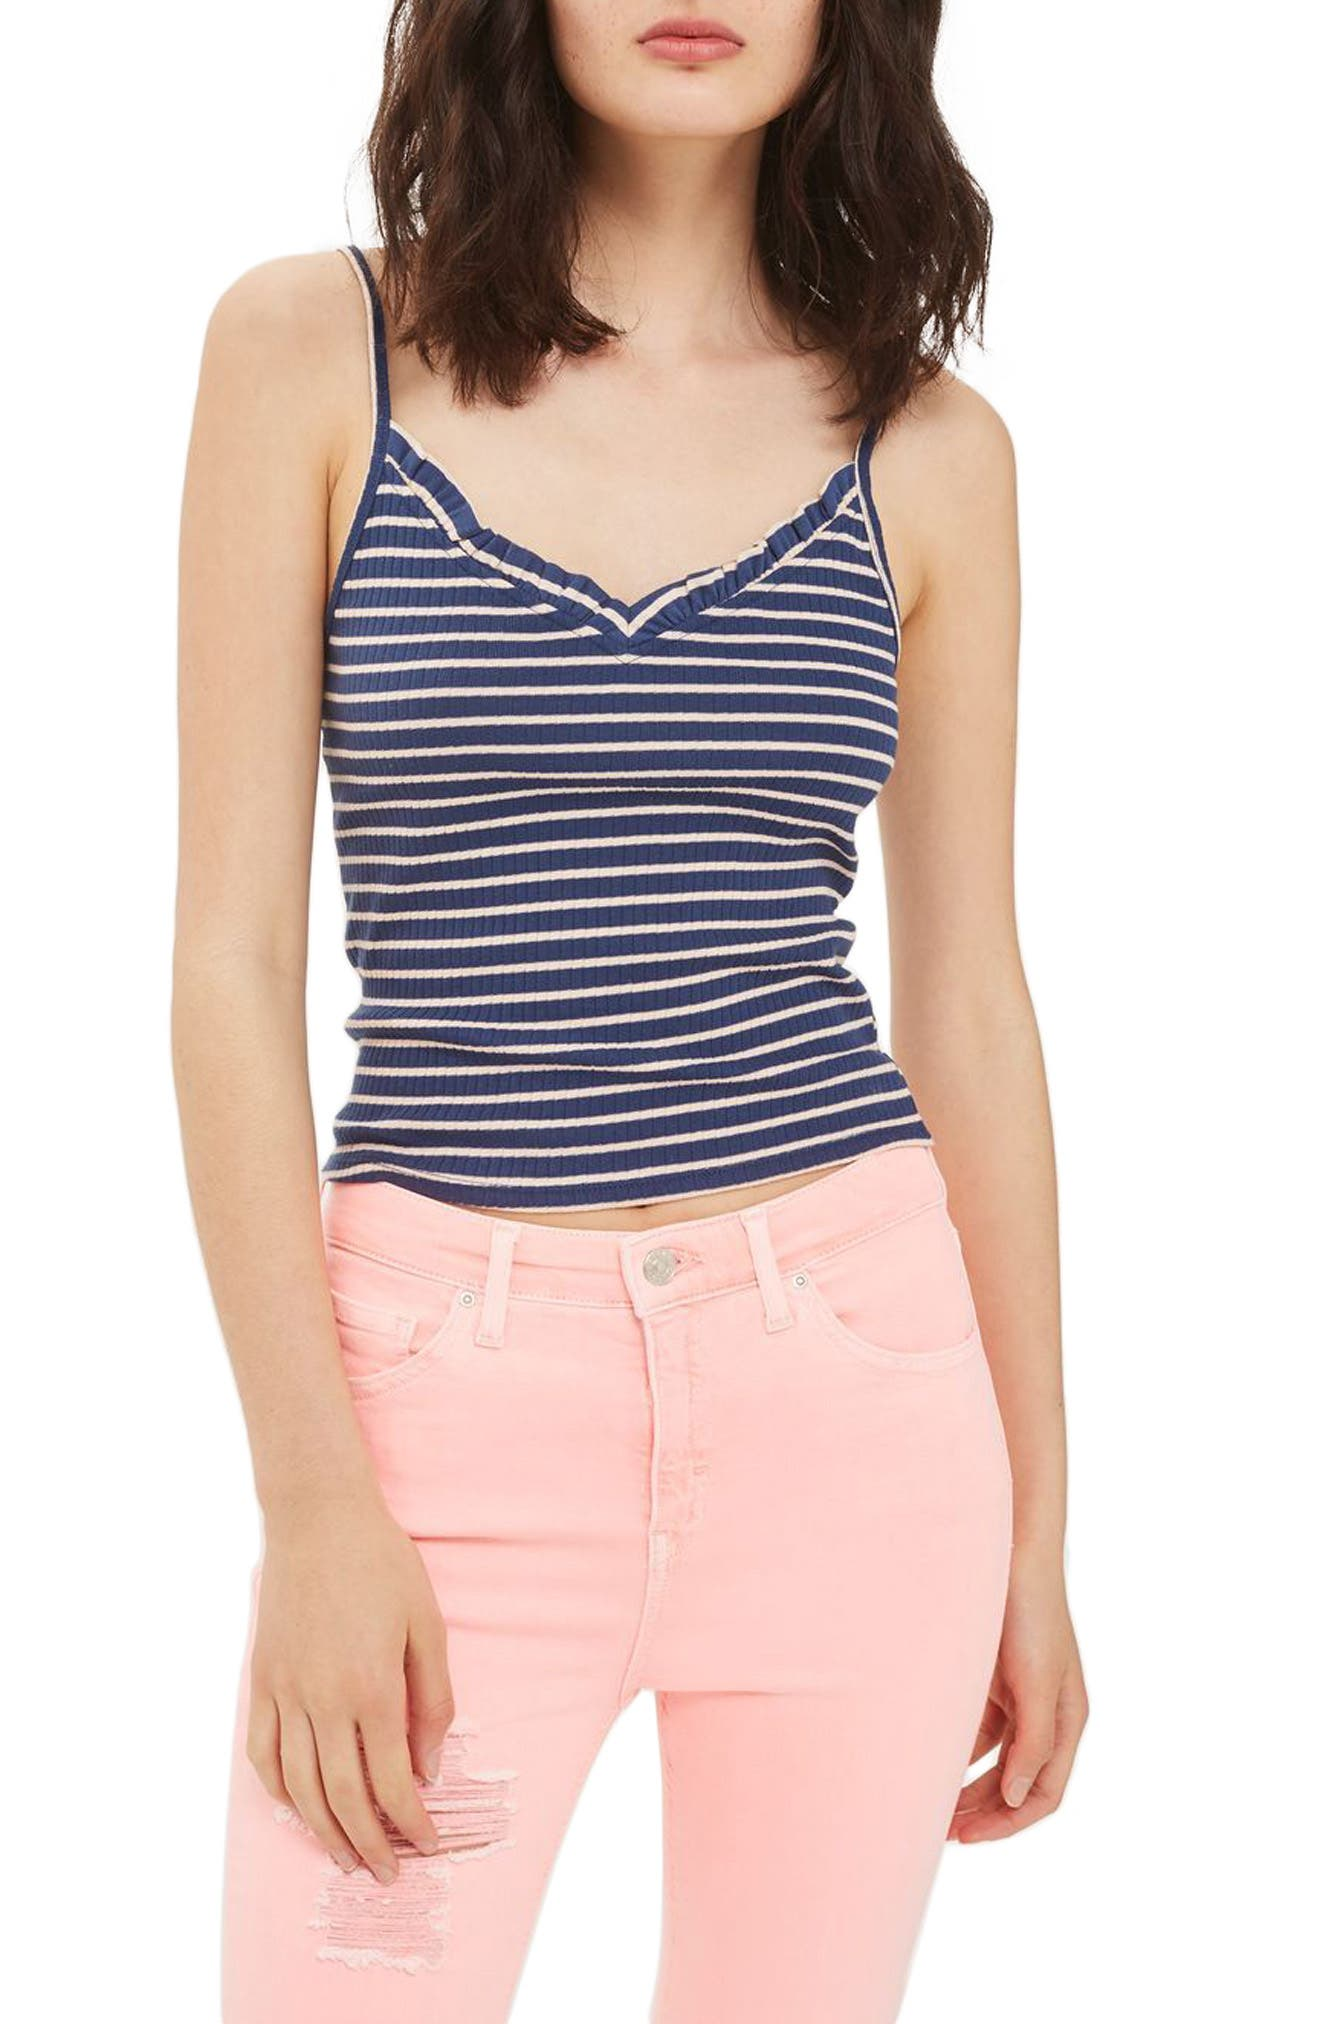 Topshop Ivy Ruffle Stripe Ribbed Camisole